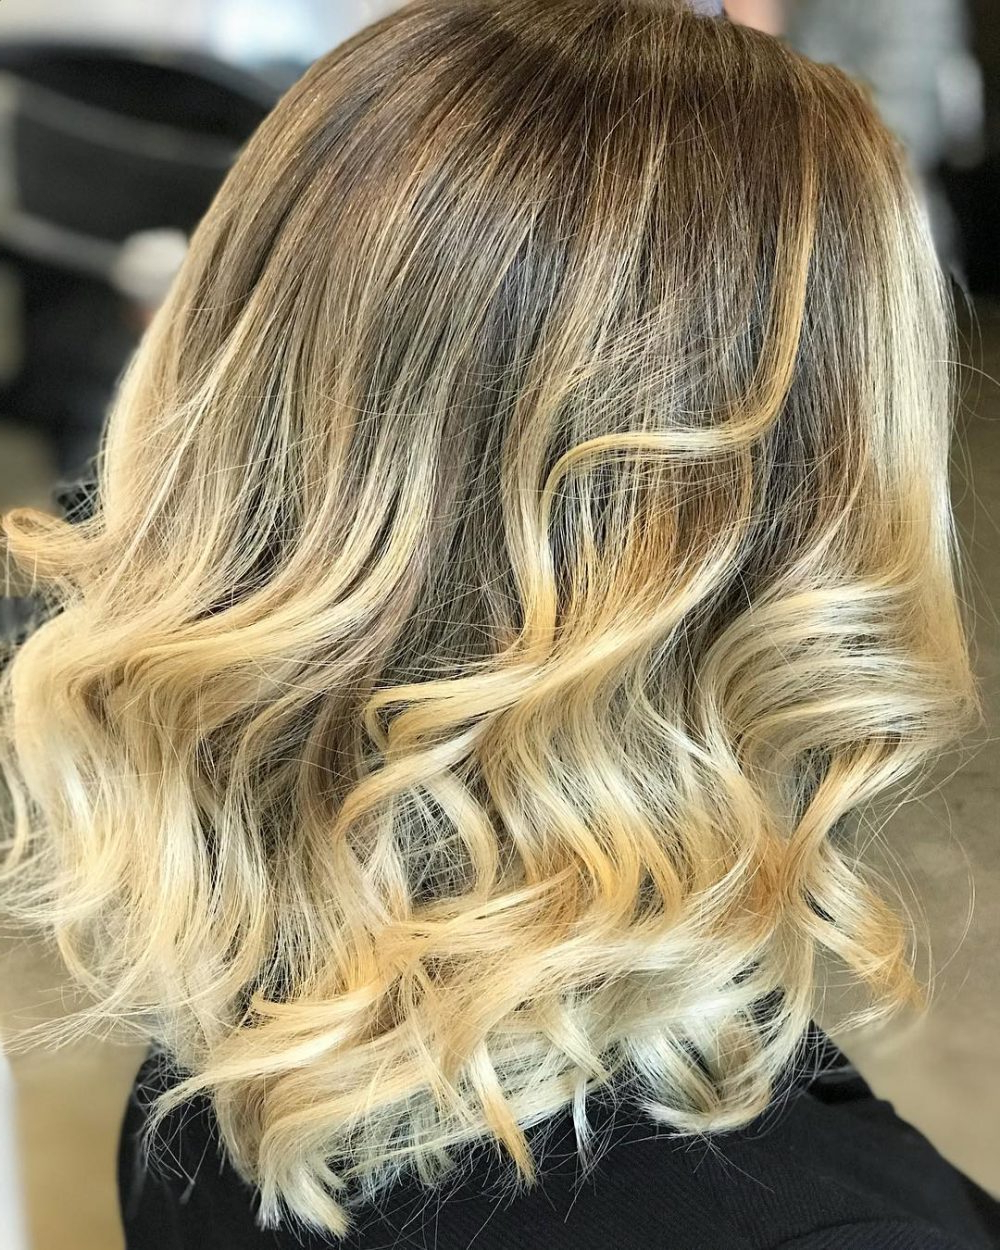 36 Curled Hairstyles Tending In 2018 – So Grab Your Hair Curling Wand! Intended For Short Bob Hairstyles With Whipped Curls And Babylights (View 15 of 25)